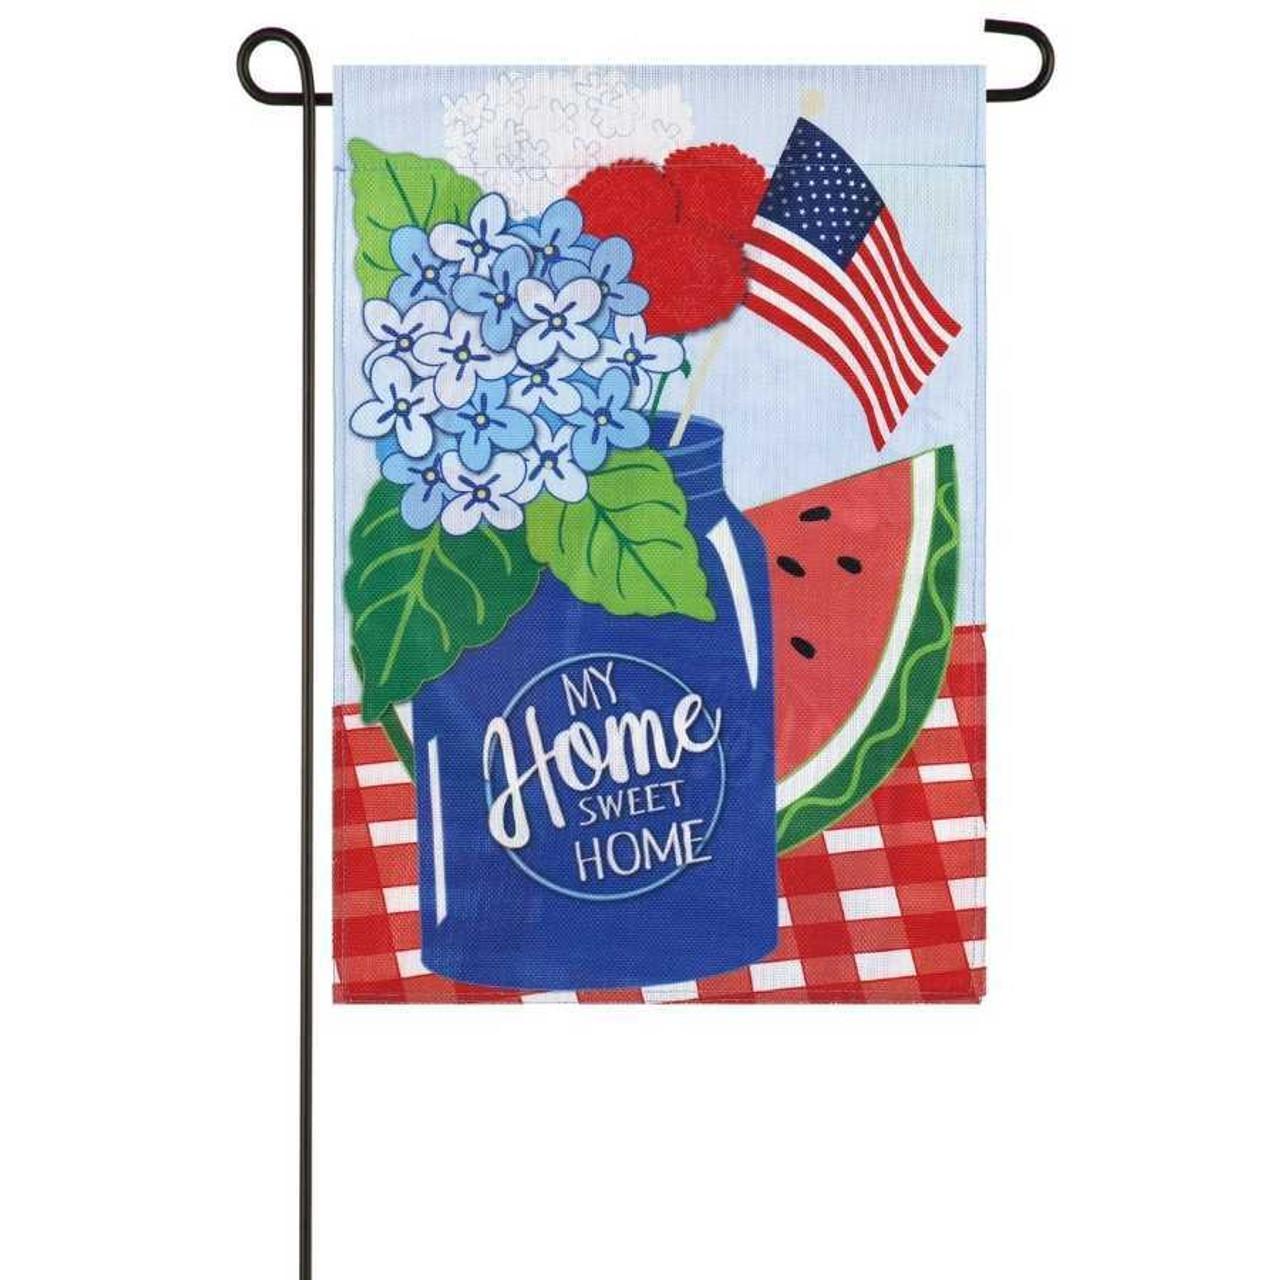 """A garden flag with a blue mason jar that says """"My Home Sweet Home."""" The jar is on a red plaid table. Inside the jar is blue and red flowers and American stick flag.  Behind the jar is a watermelon. The background is a sky blue."""